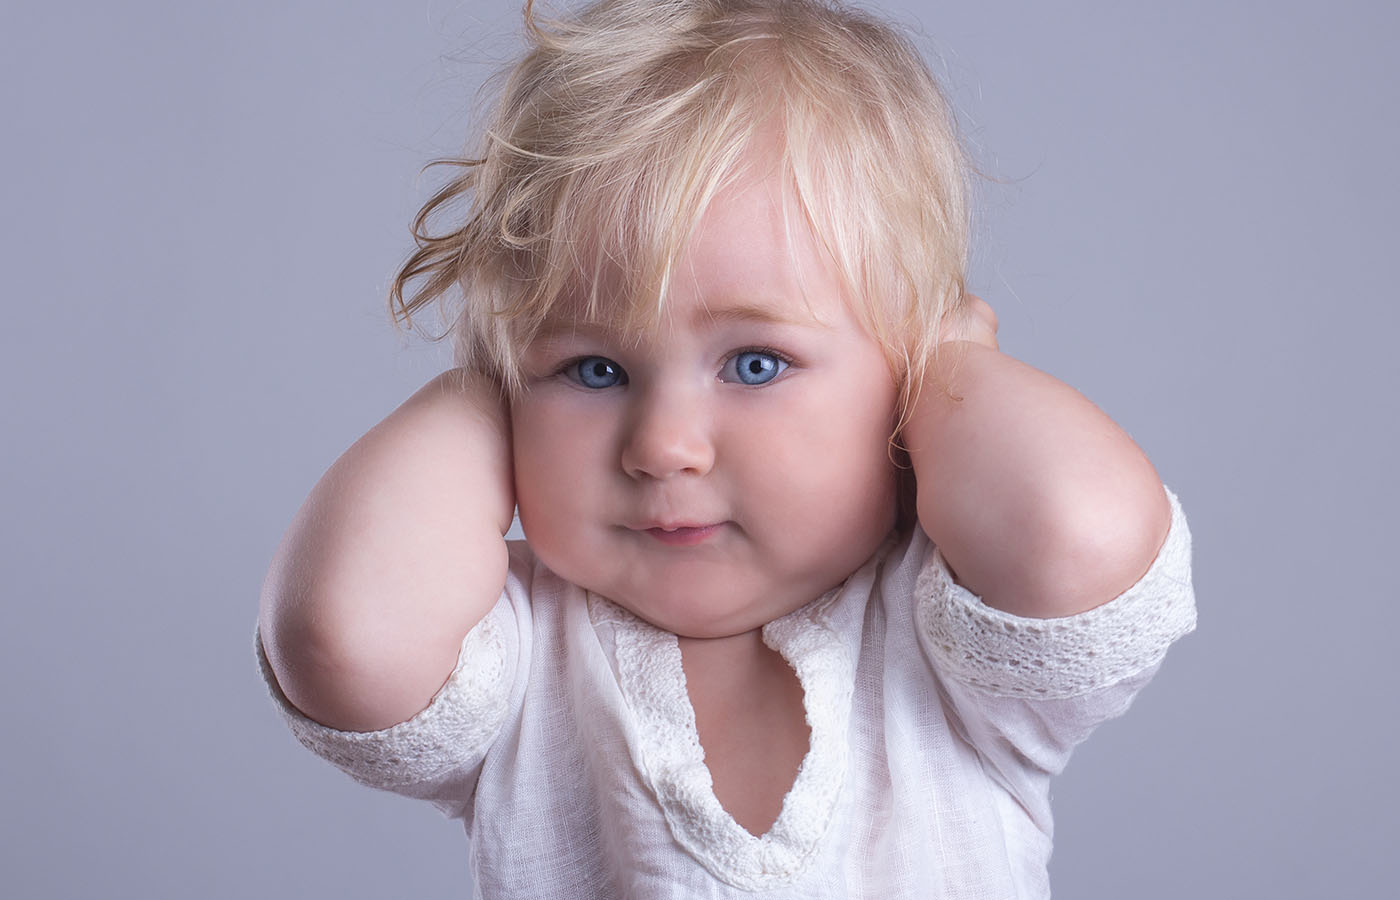 Ear Infections Are Often Hard to Detect in Children